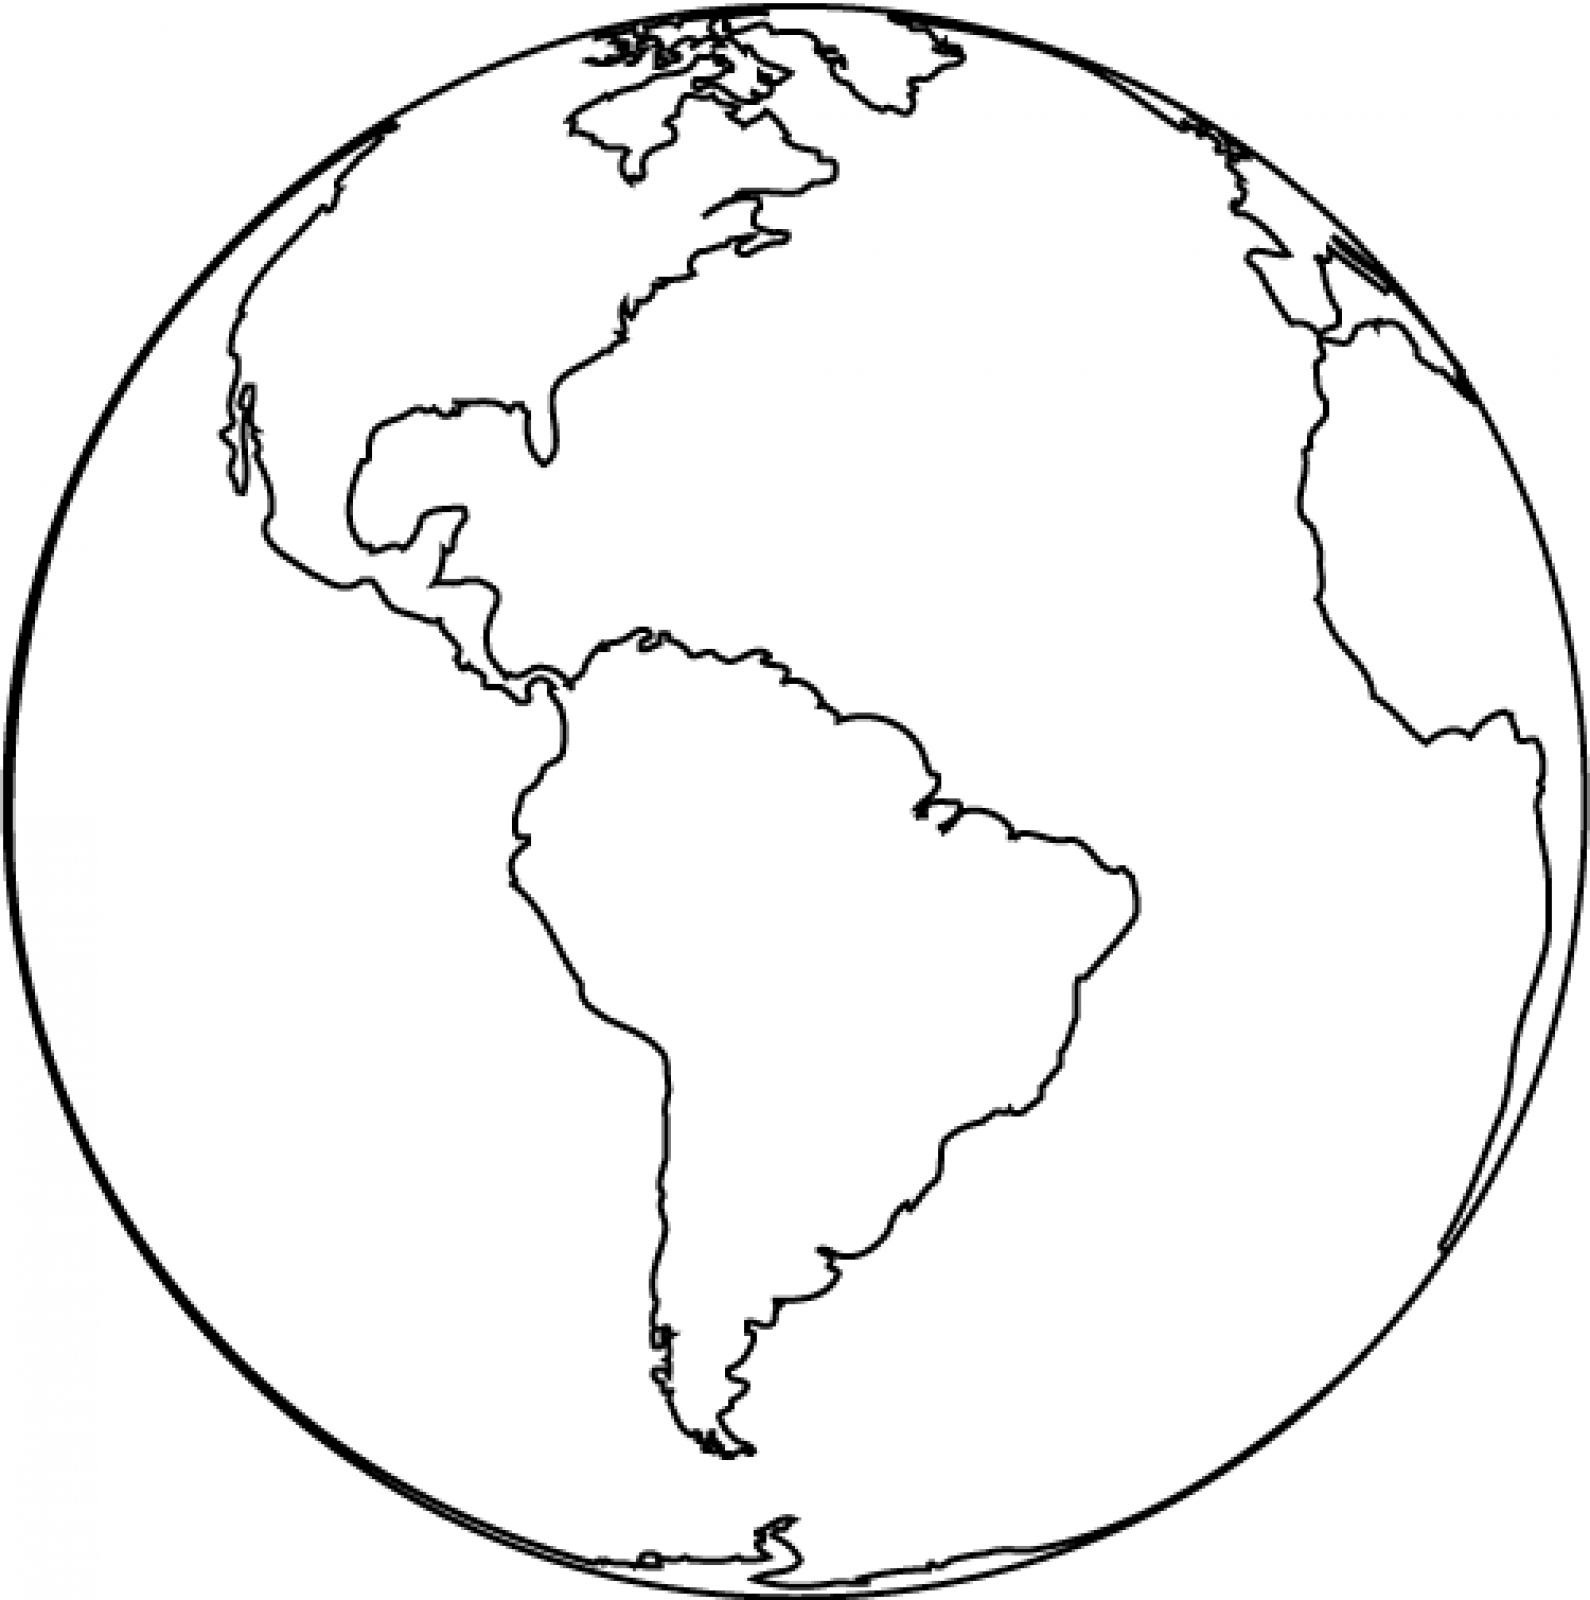 Free Printable Earth Coloring Pages For Kids - Free Printable Earth Pictures